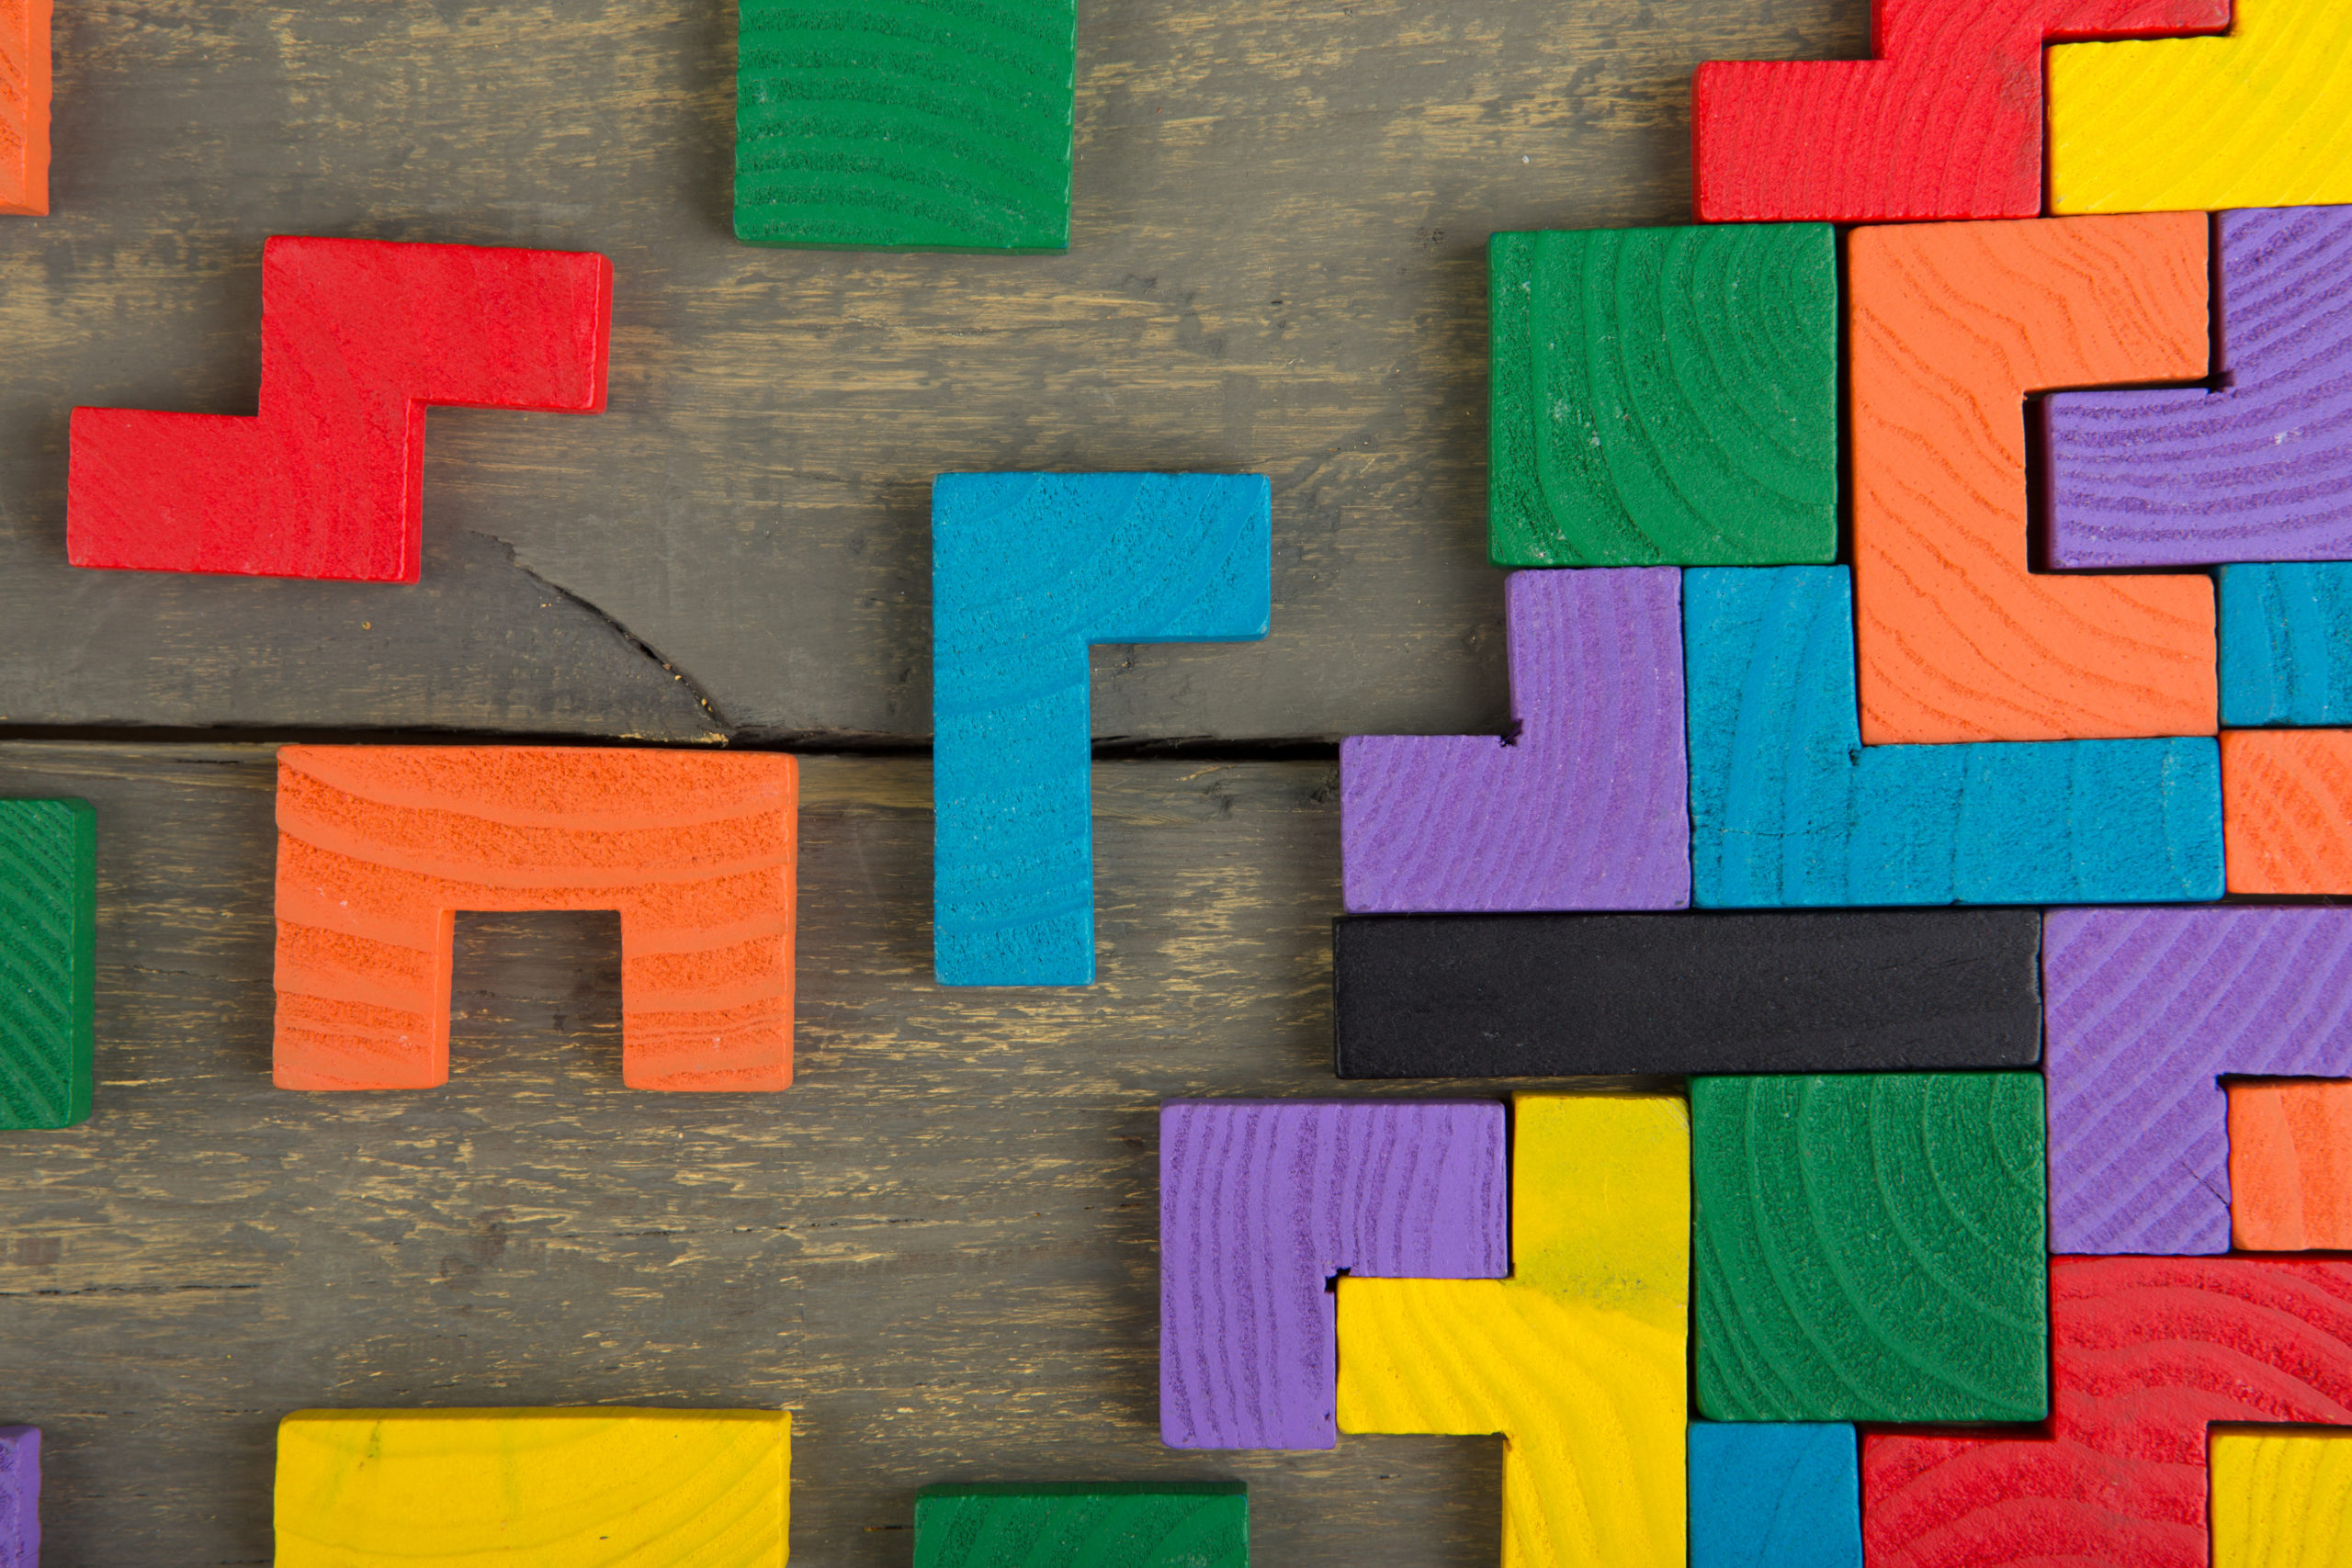 Colorful Tetris blocks on a wooden background